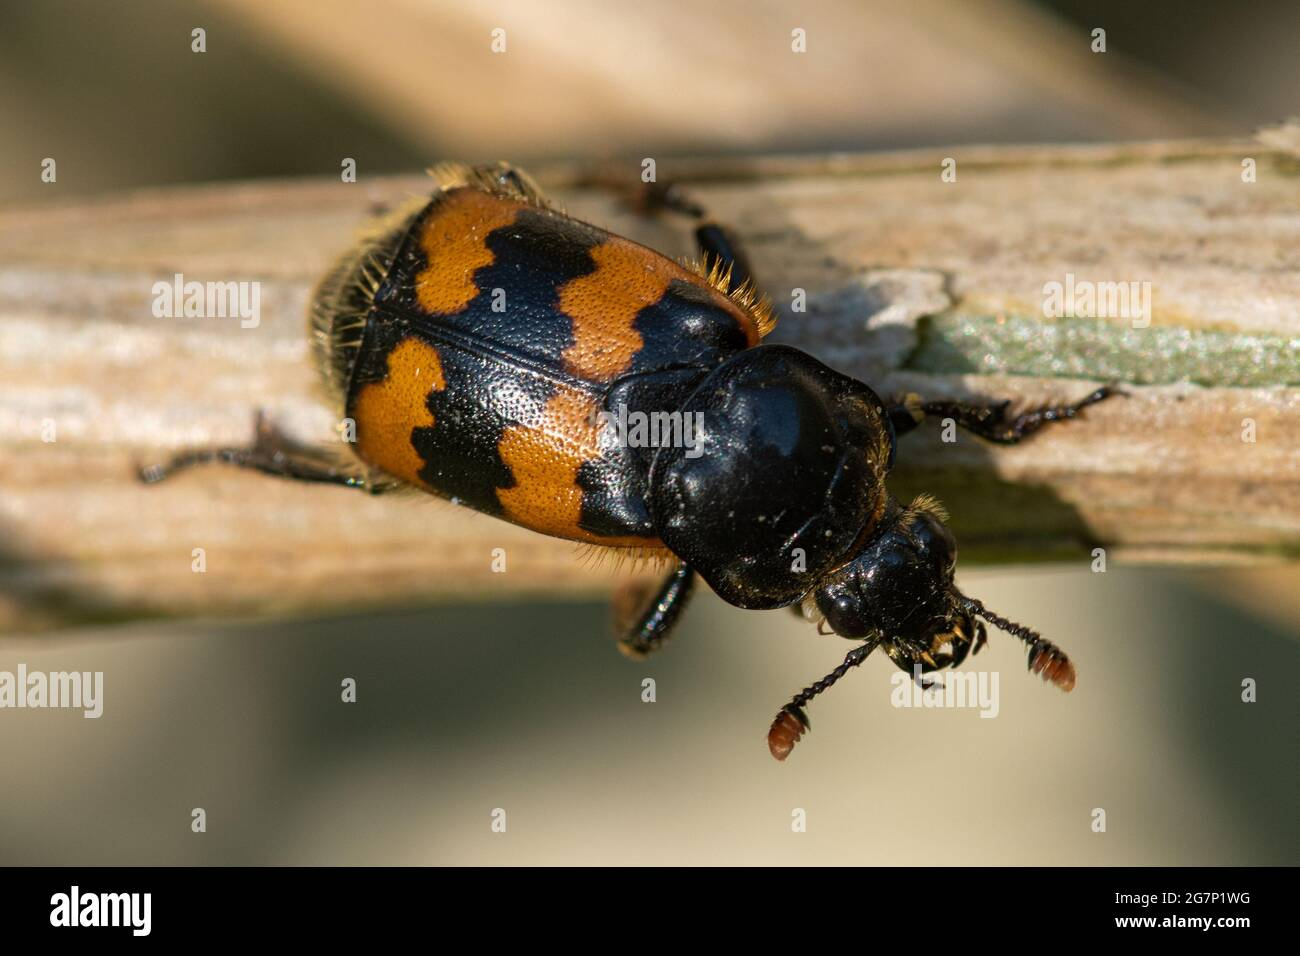 common-sexton-beetle-nicrophorus-vespilloides-a-brightly-coloured-burying-beetle-species-uk-2G7P1WG.jpg